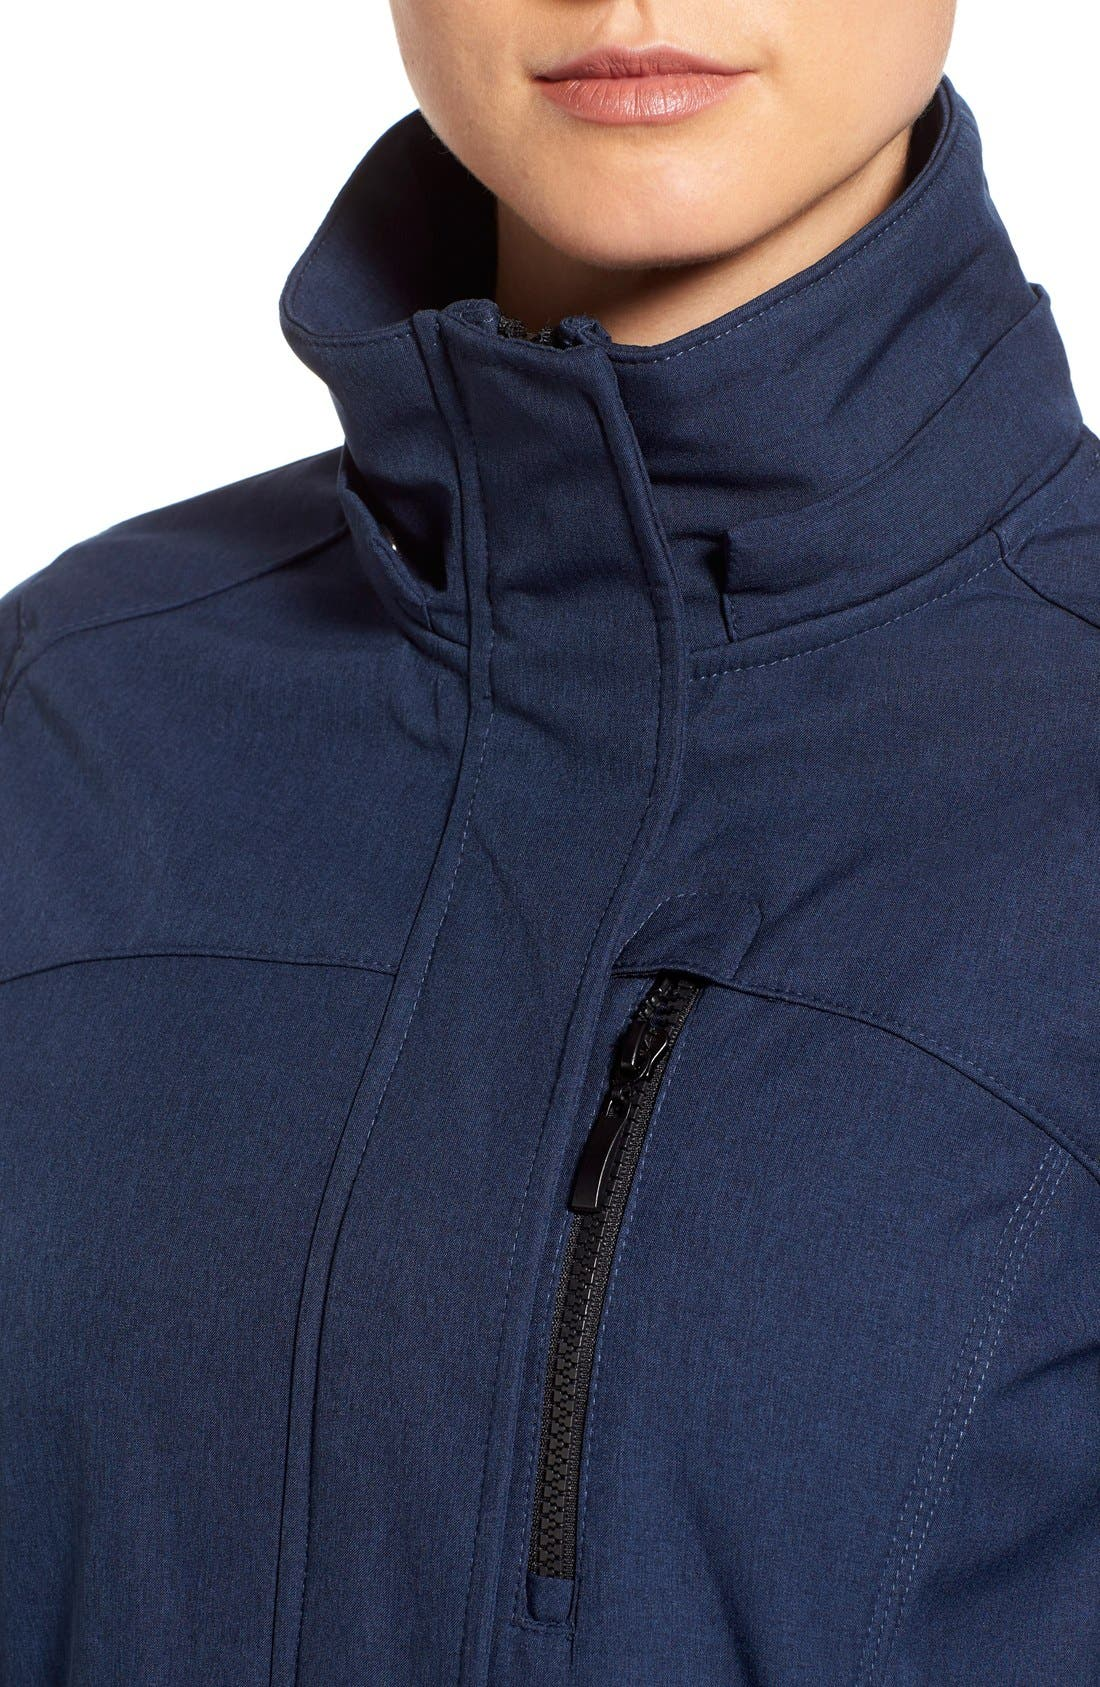 Crossdye Hooded Soft Shell Jacket,                             Alternate thumbnail 23, color,